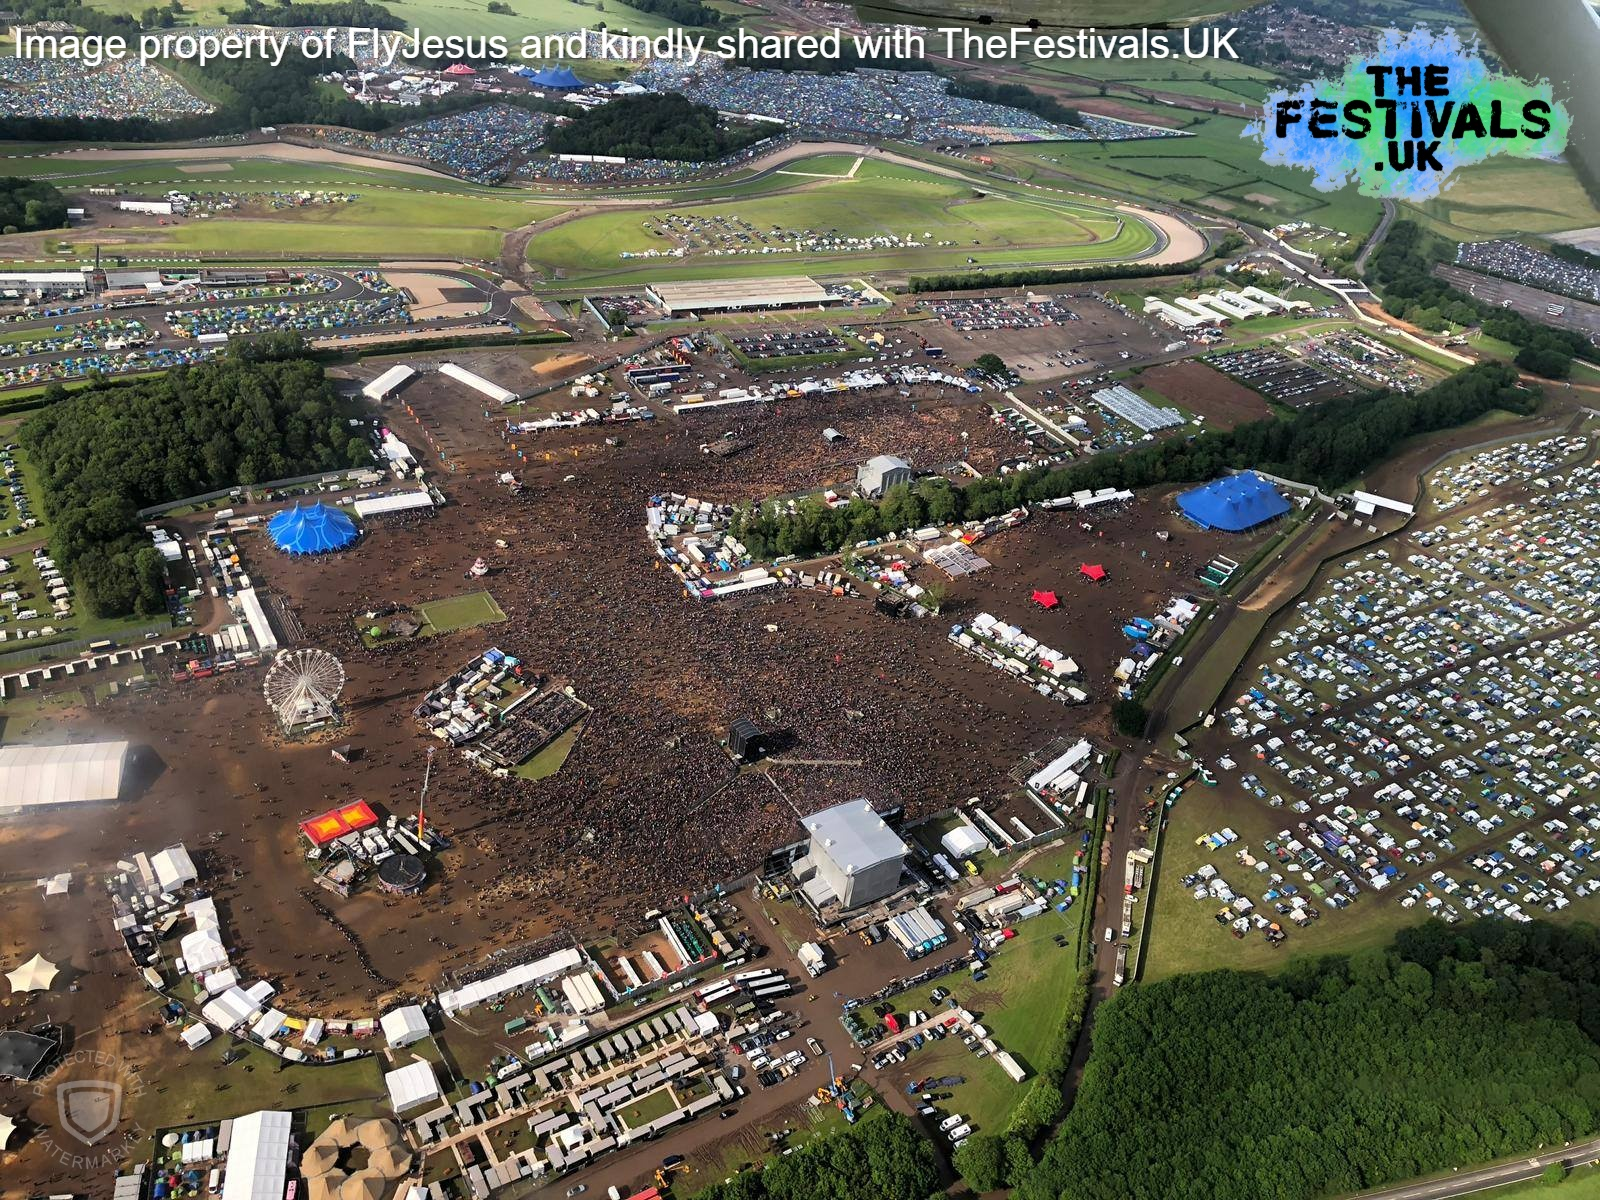 Download Festival 2019 Donington Park Aerial Photo